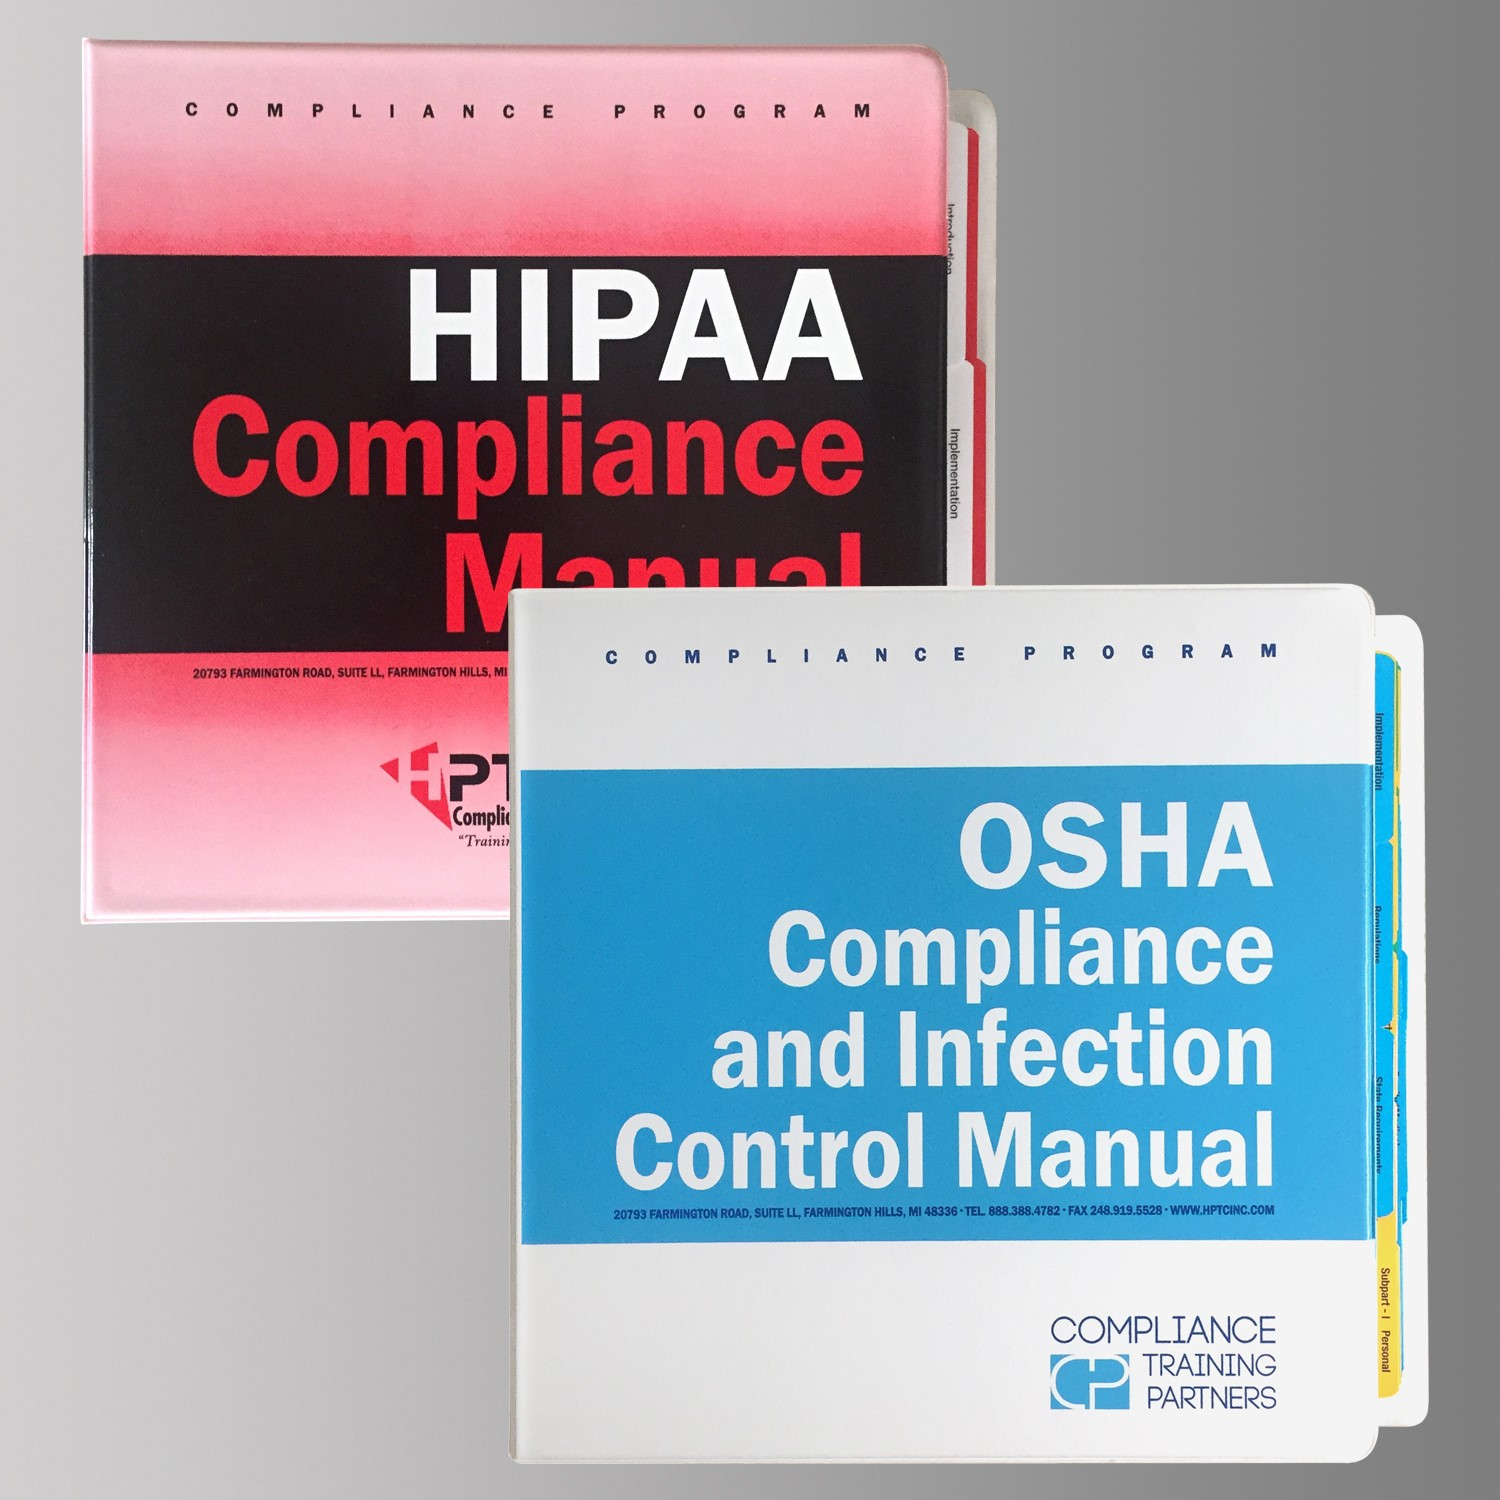 HIPAA_OSHA manual with new logo combo picture